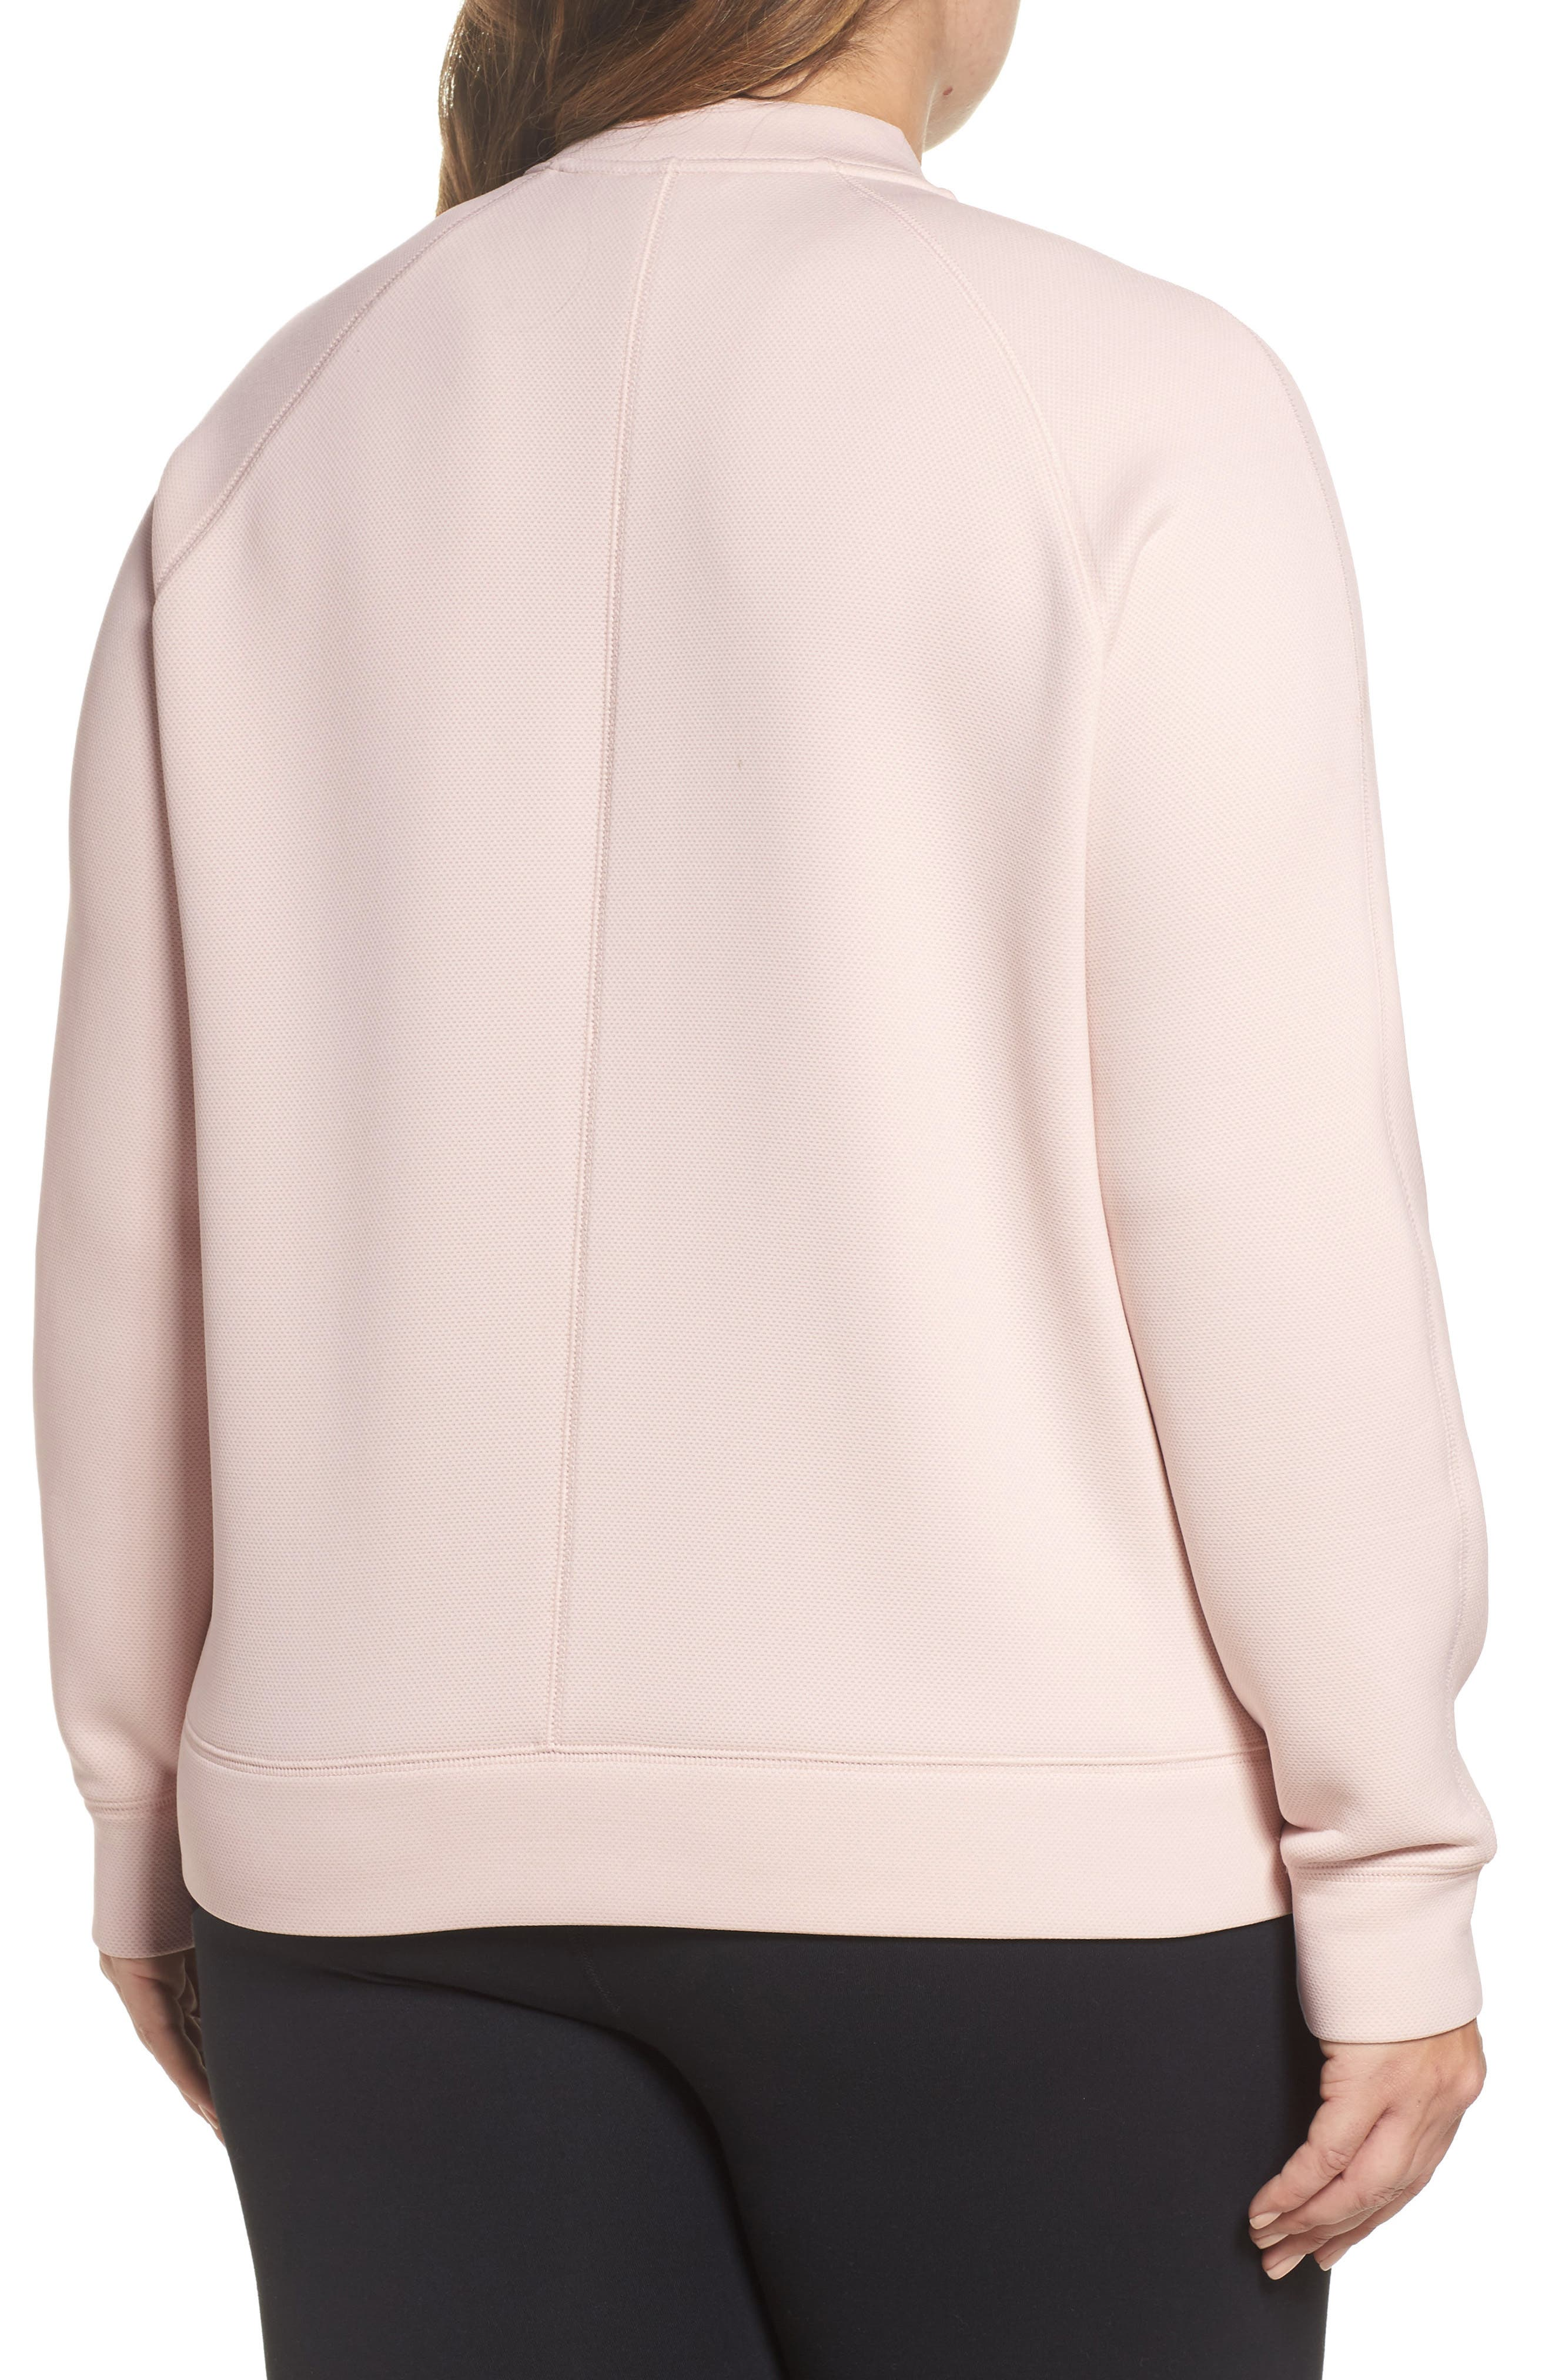 Arise Luxe Bomber Jacket,                             Alternate thumbnail 2, color,                             Pink Morganite